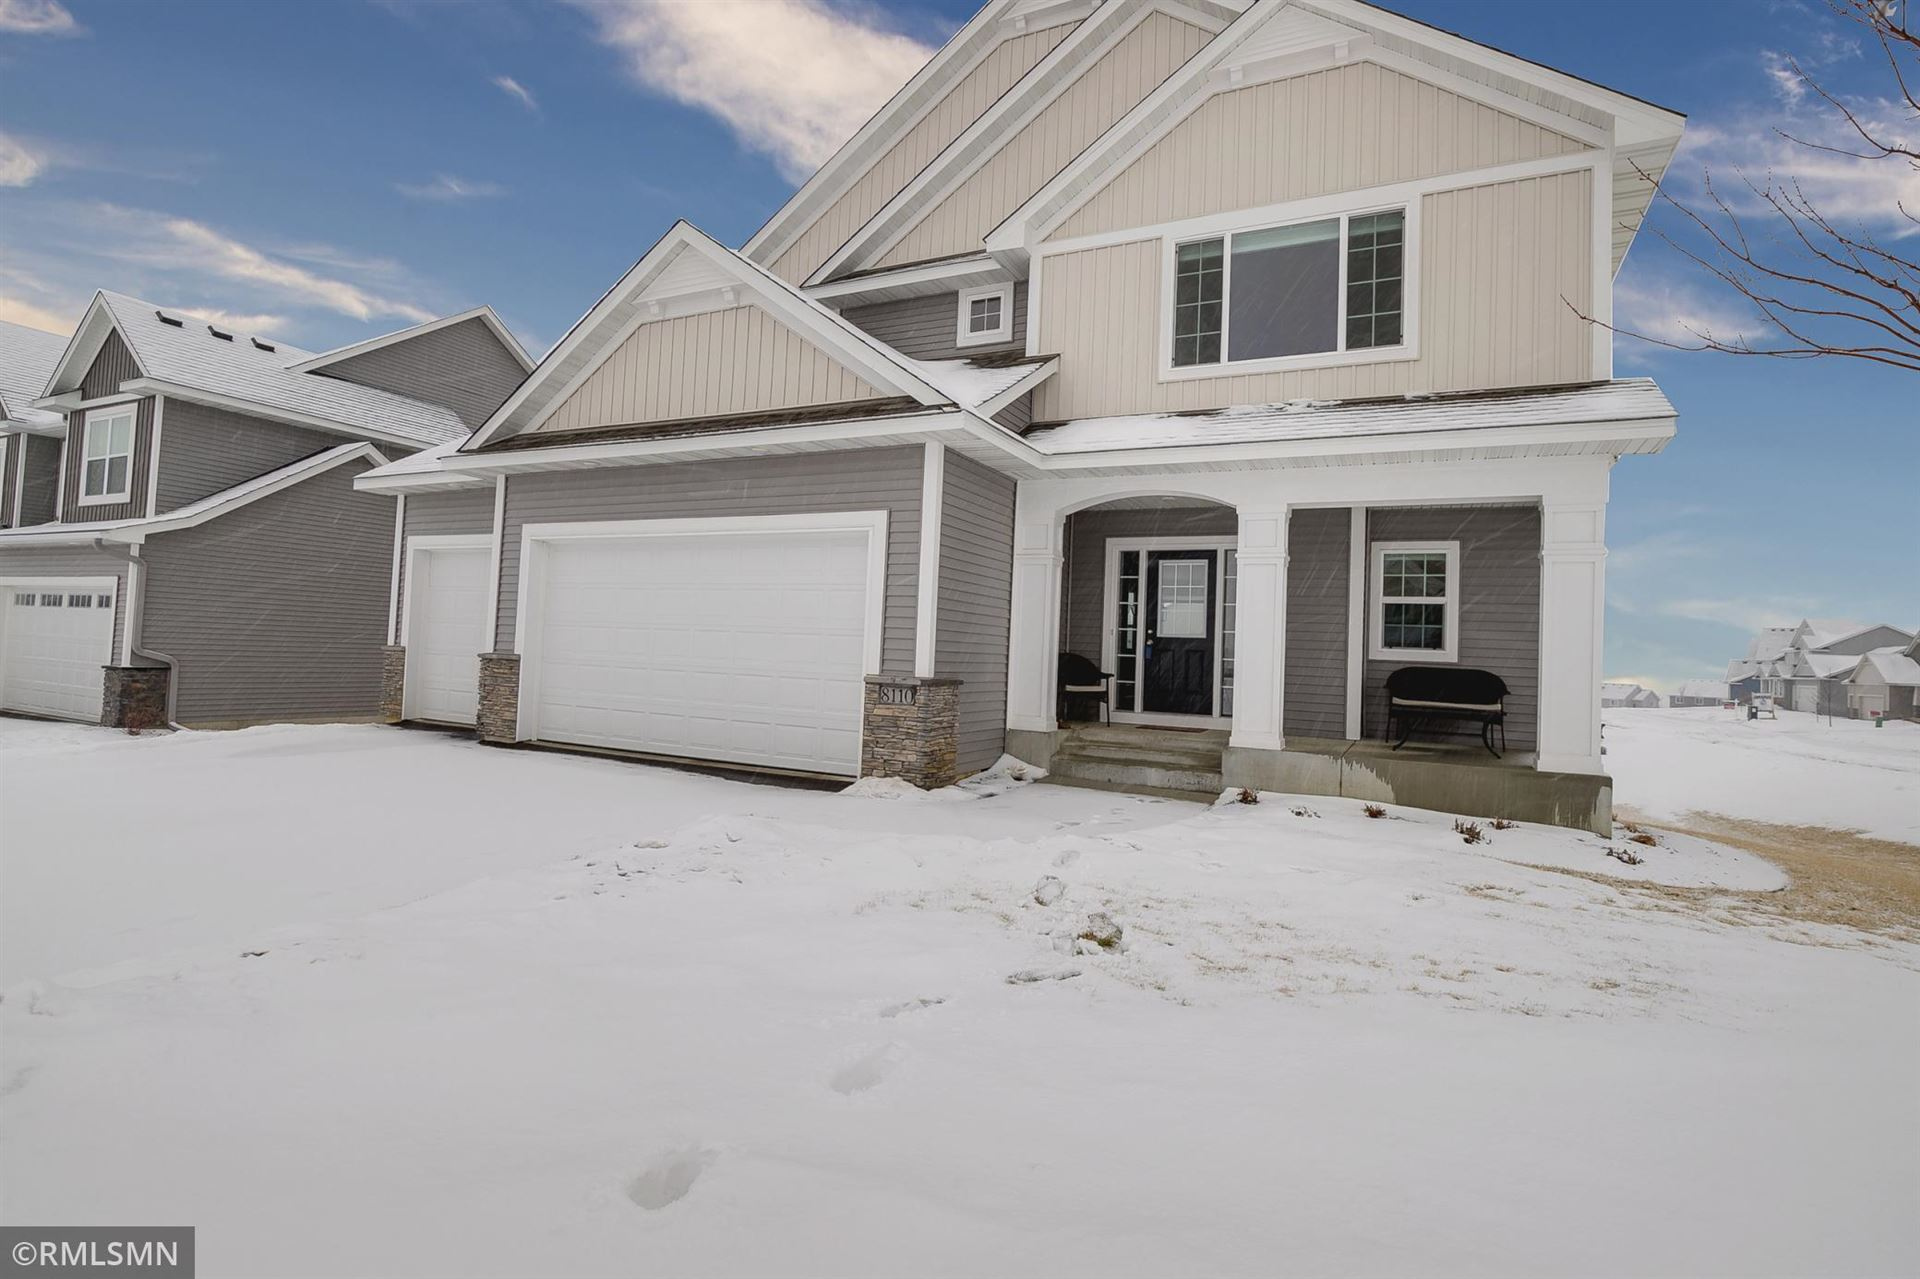 Photo of 8110 200th Street W, Lakeville, MN 55044 (MLS # 5701391)